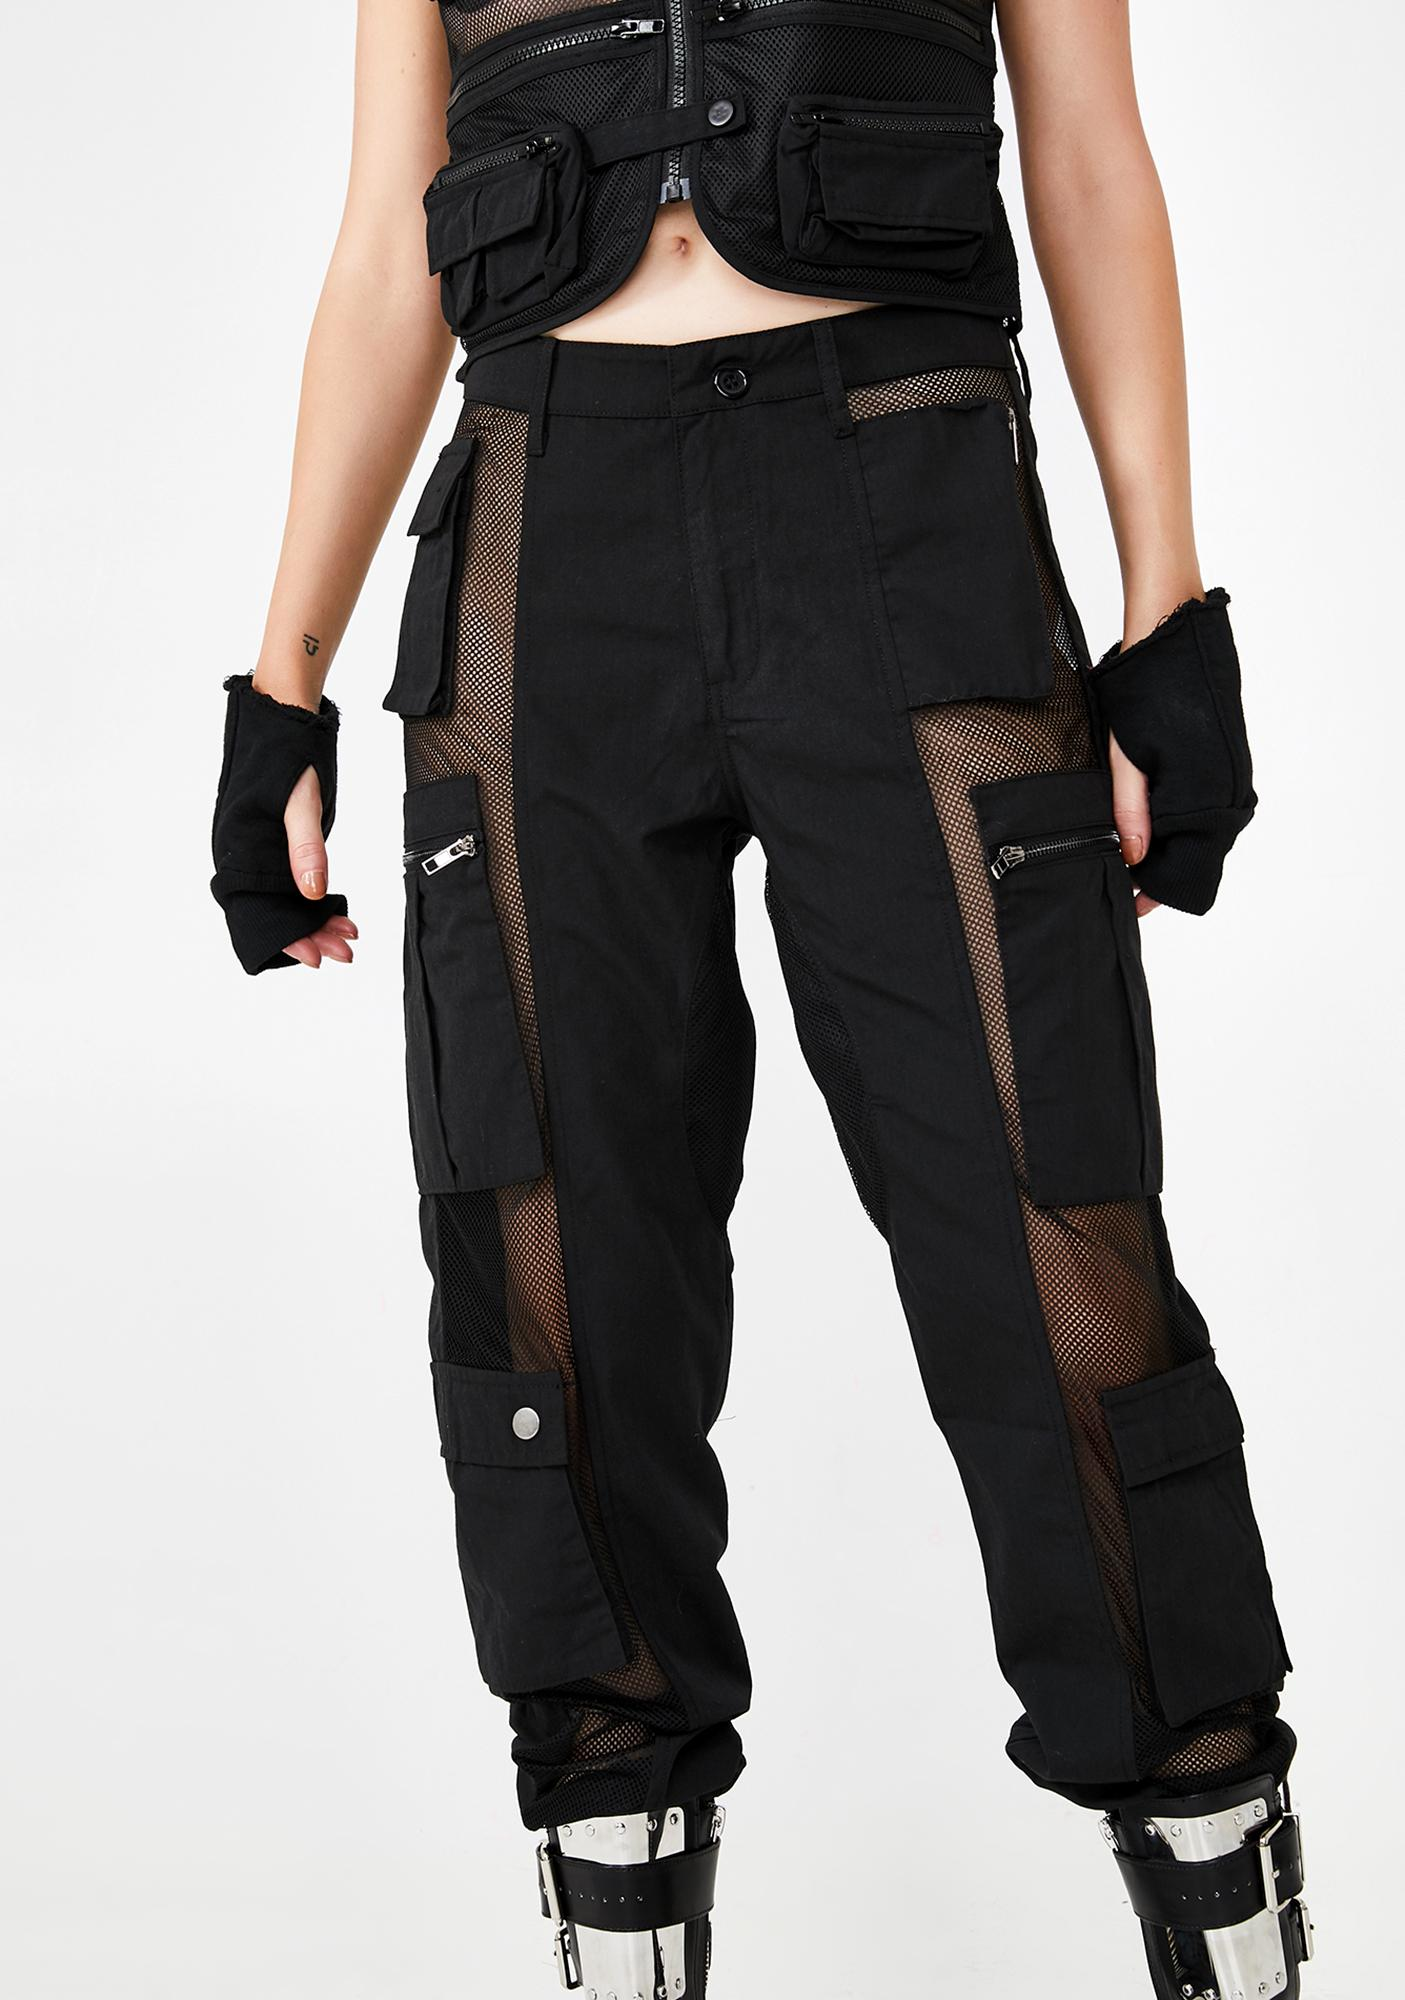 Club Exx Failure To Cooperate Cargo Pants